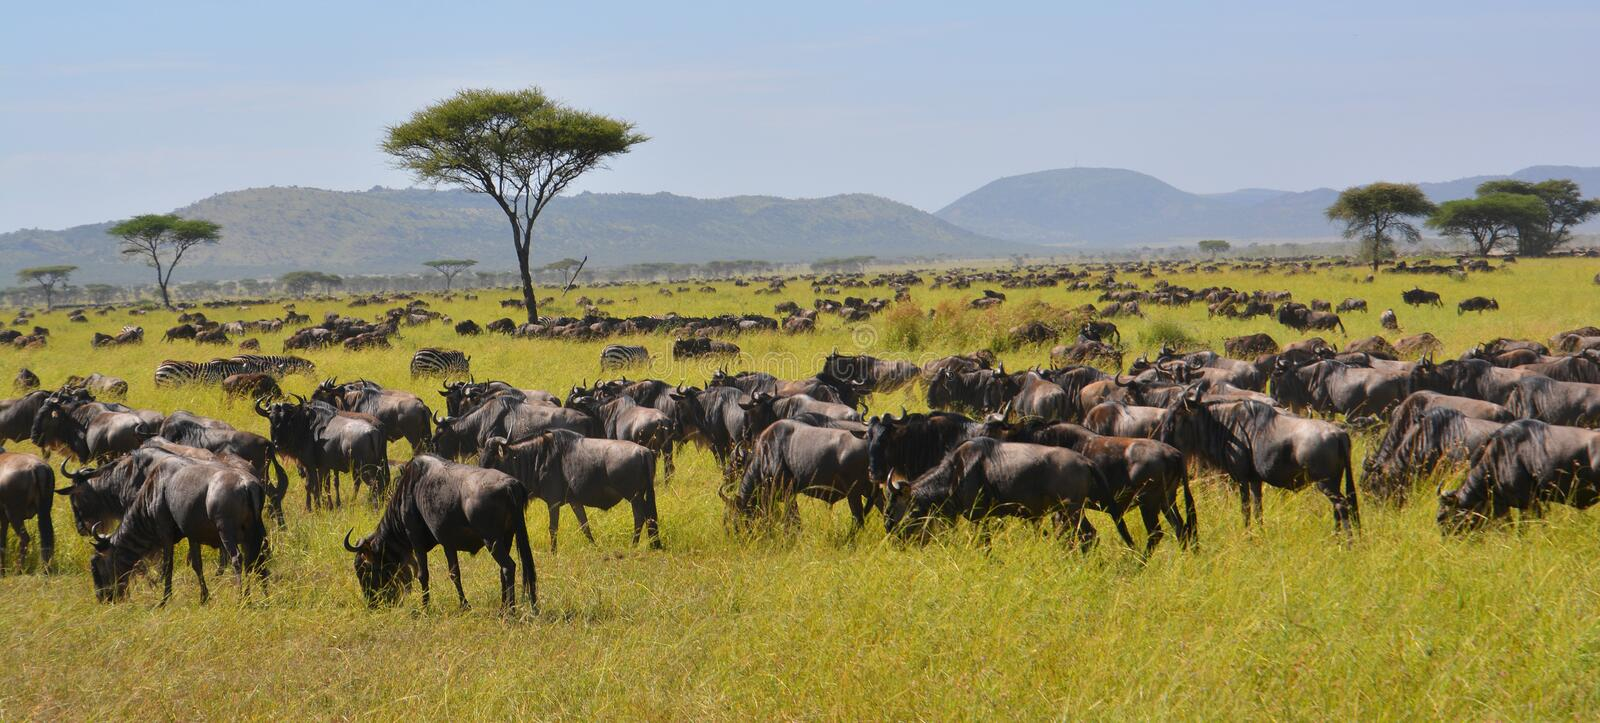 Migration of the buffalo Wildebeest on the plains of Africa. In a game reserve in Kenya. Hundreds of Wildebeest royalty free stock photography